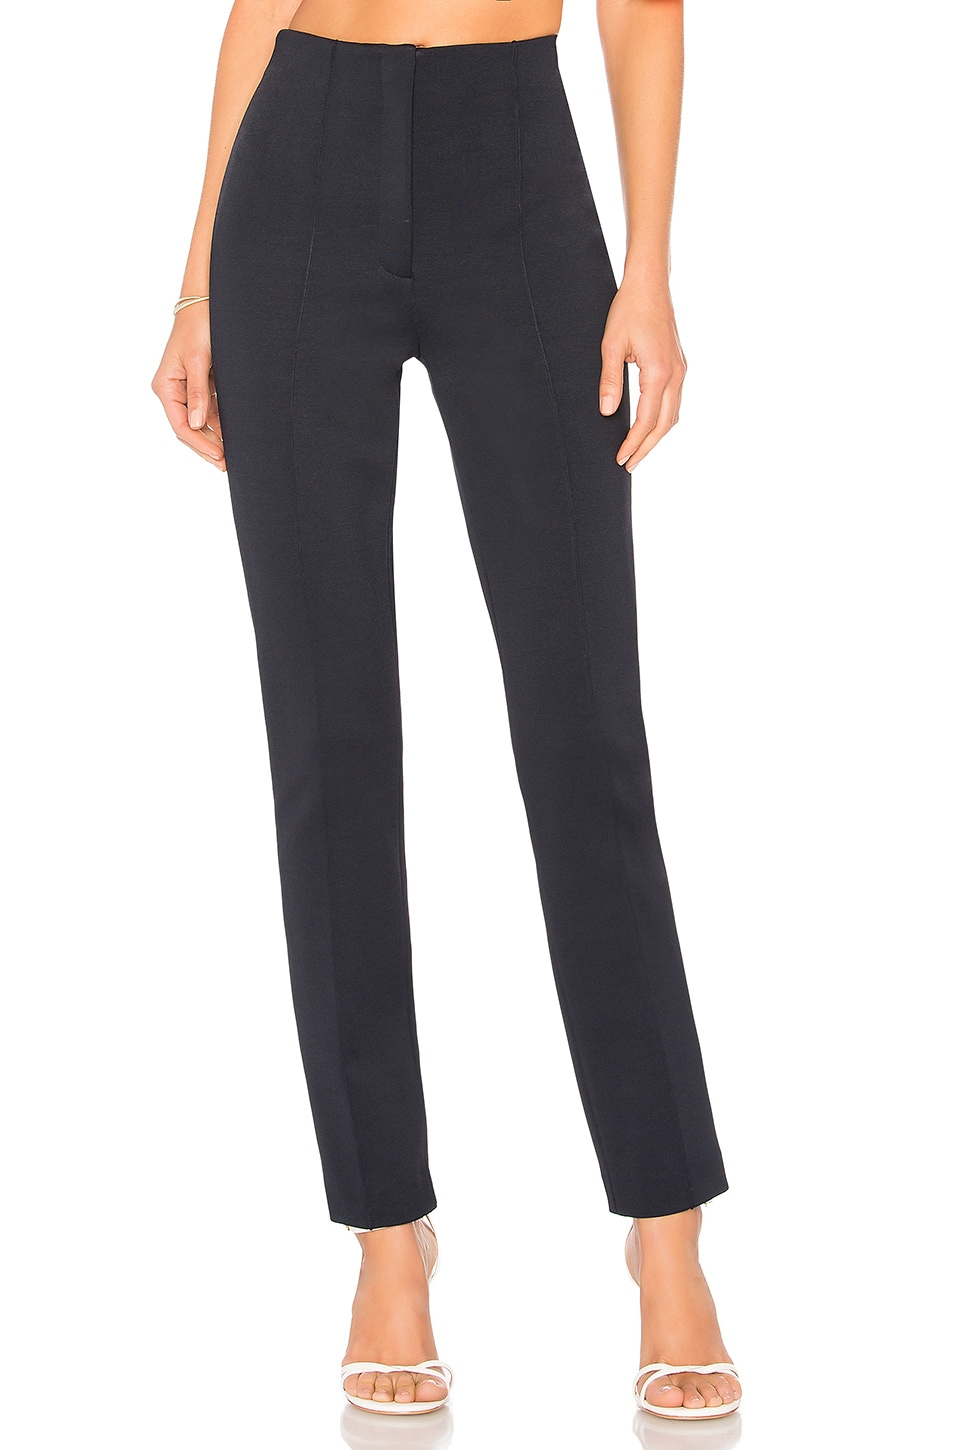 High Waisted Skinny Pant